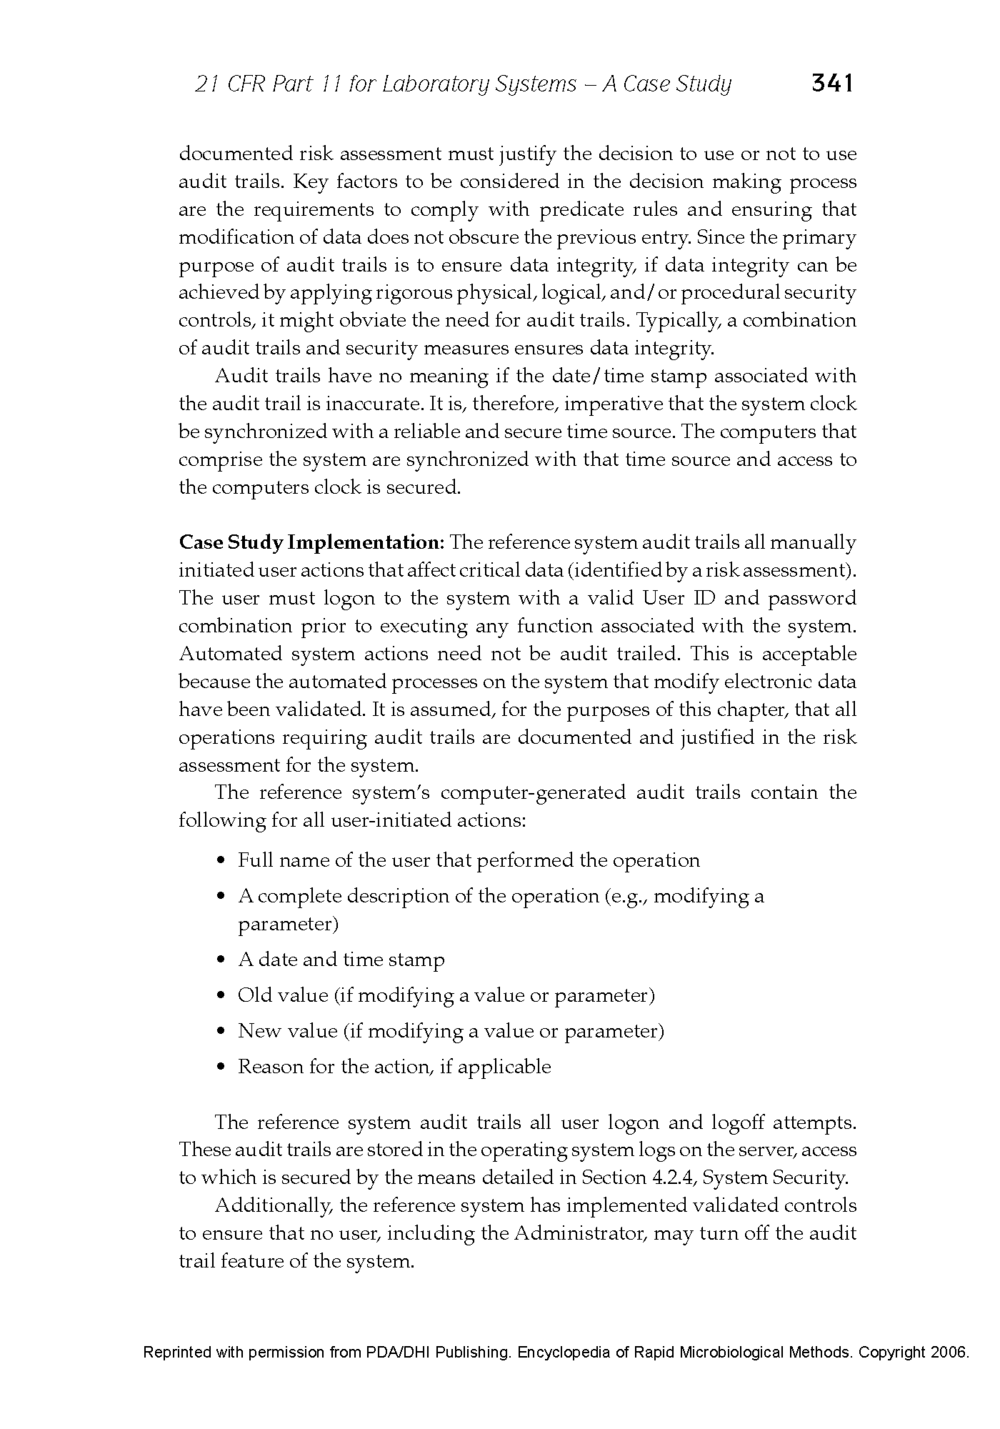 21 CFR Part 11 - Case Study Published in the Encyclopedia of Rapid Microbiological Methods - Volume 1, DHI Publishing_Page_19.png